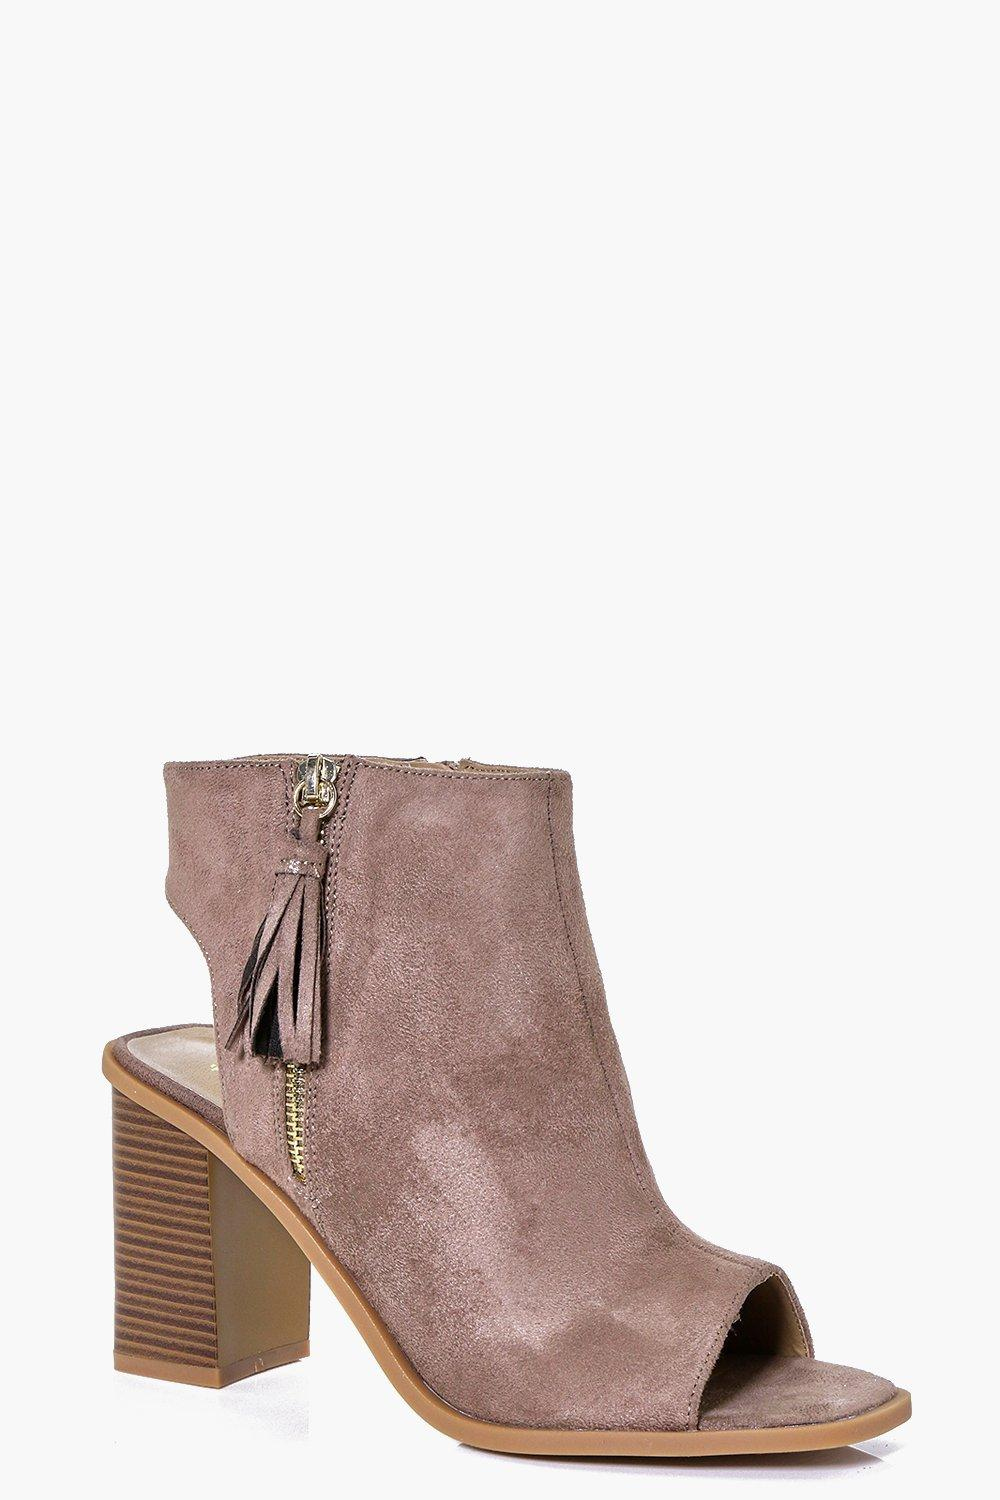 Square Toe Peeptoe Fringe Side Shoe Boot taupe